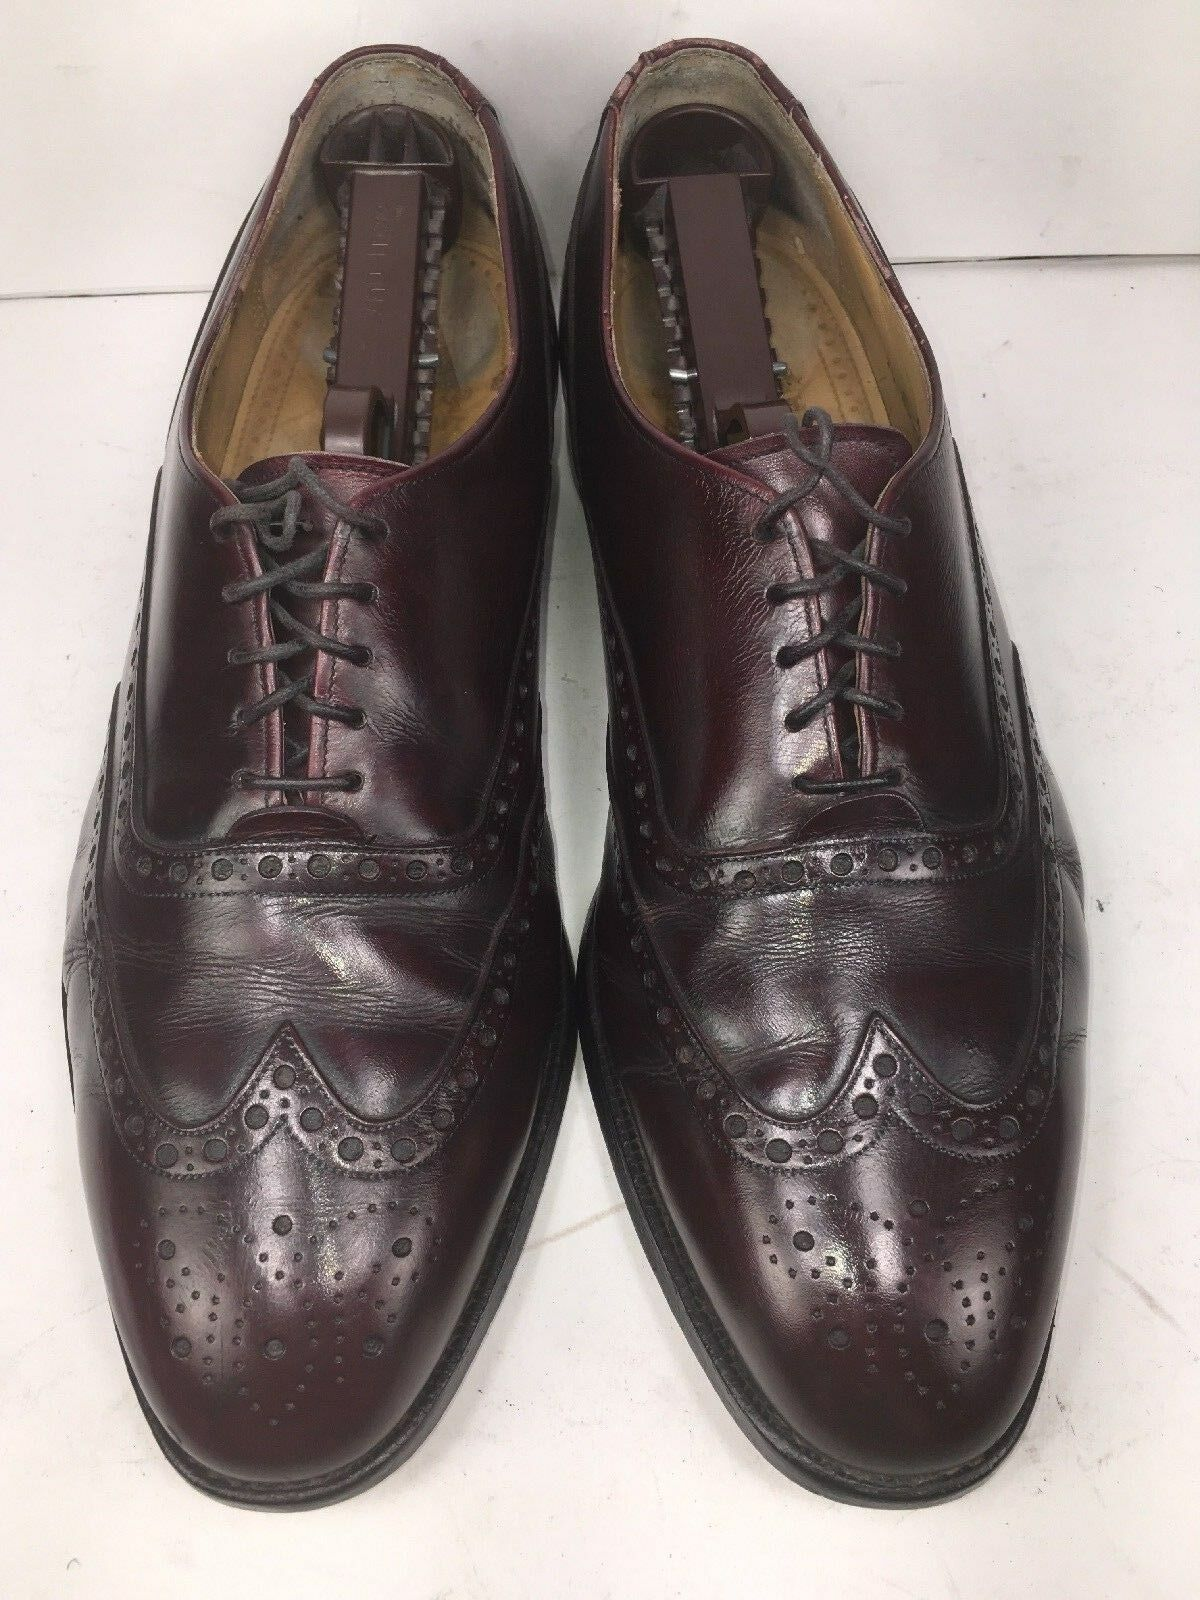 Johnston Murphy   Herren Oxfords  Aristocraft Burgundy D Leder Wingtip Sz 10 D Burgundy USA 8090ed